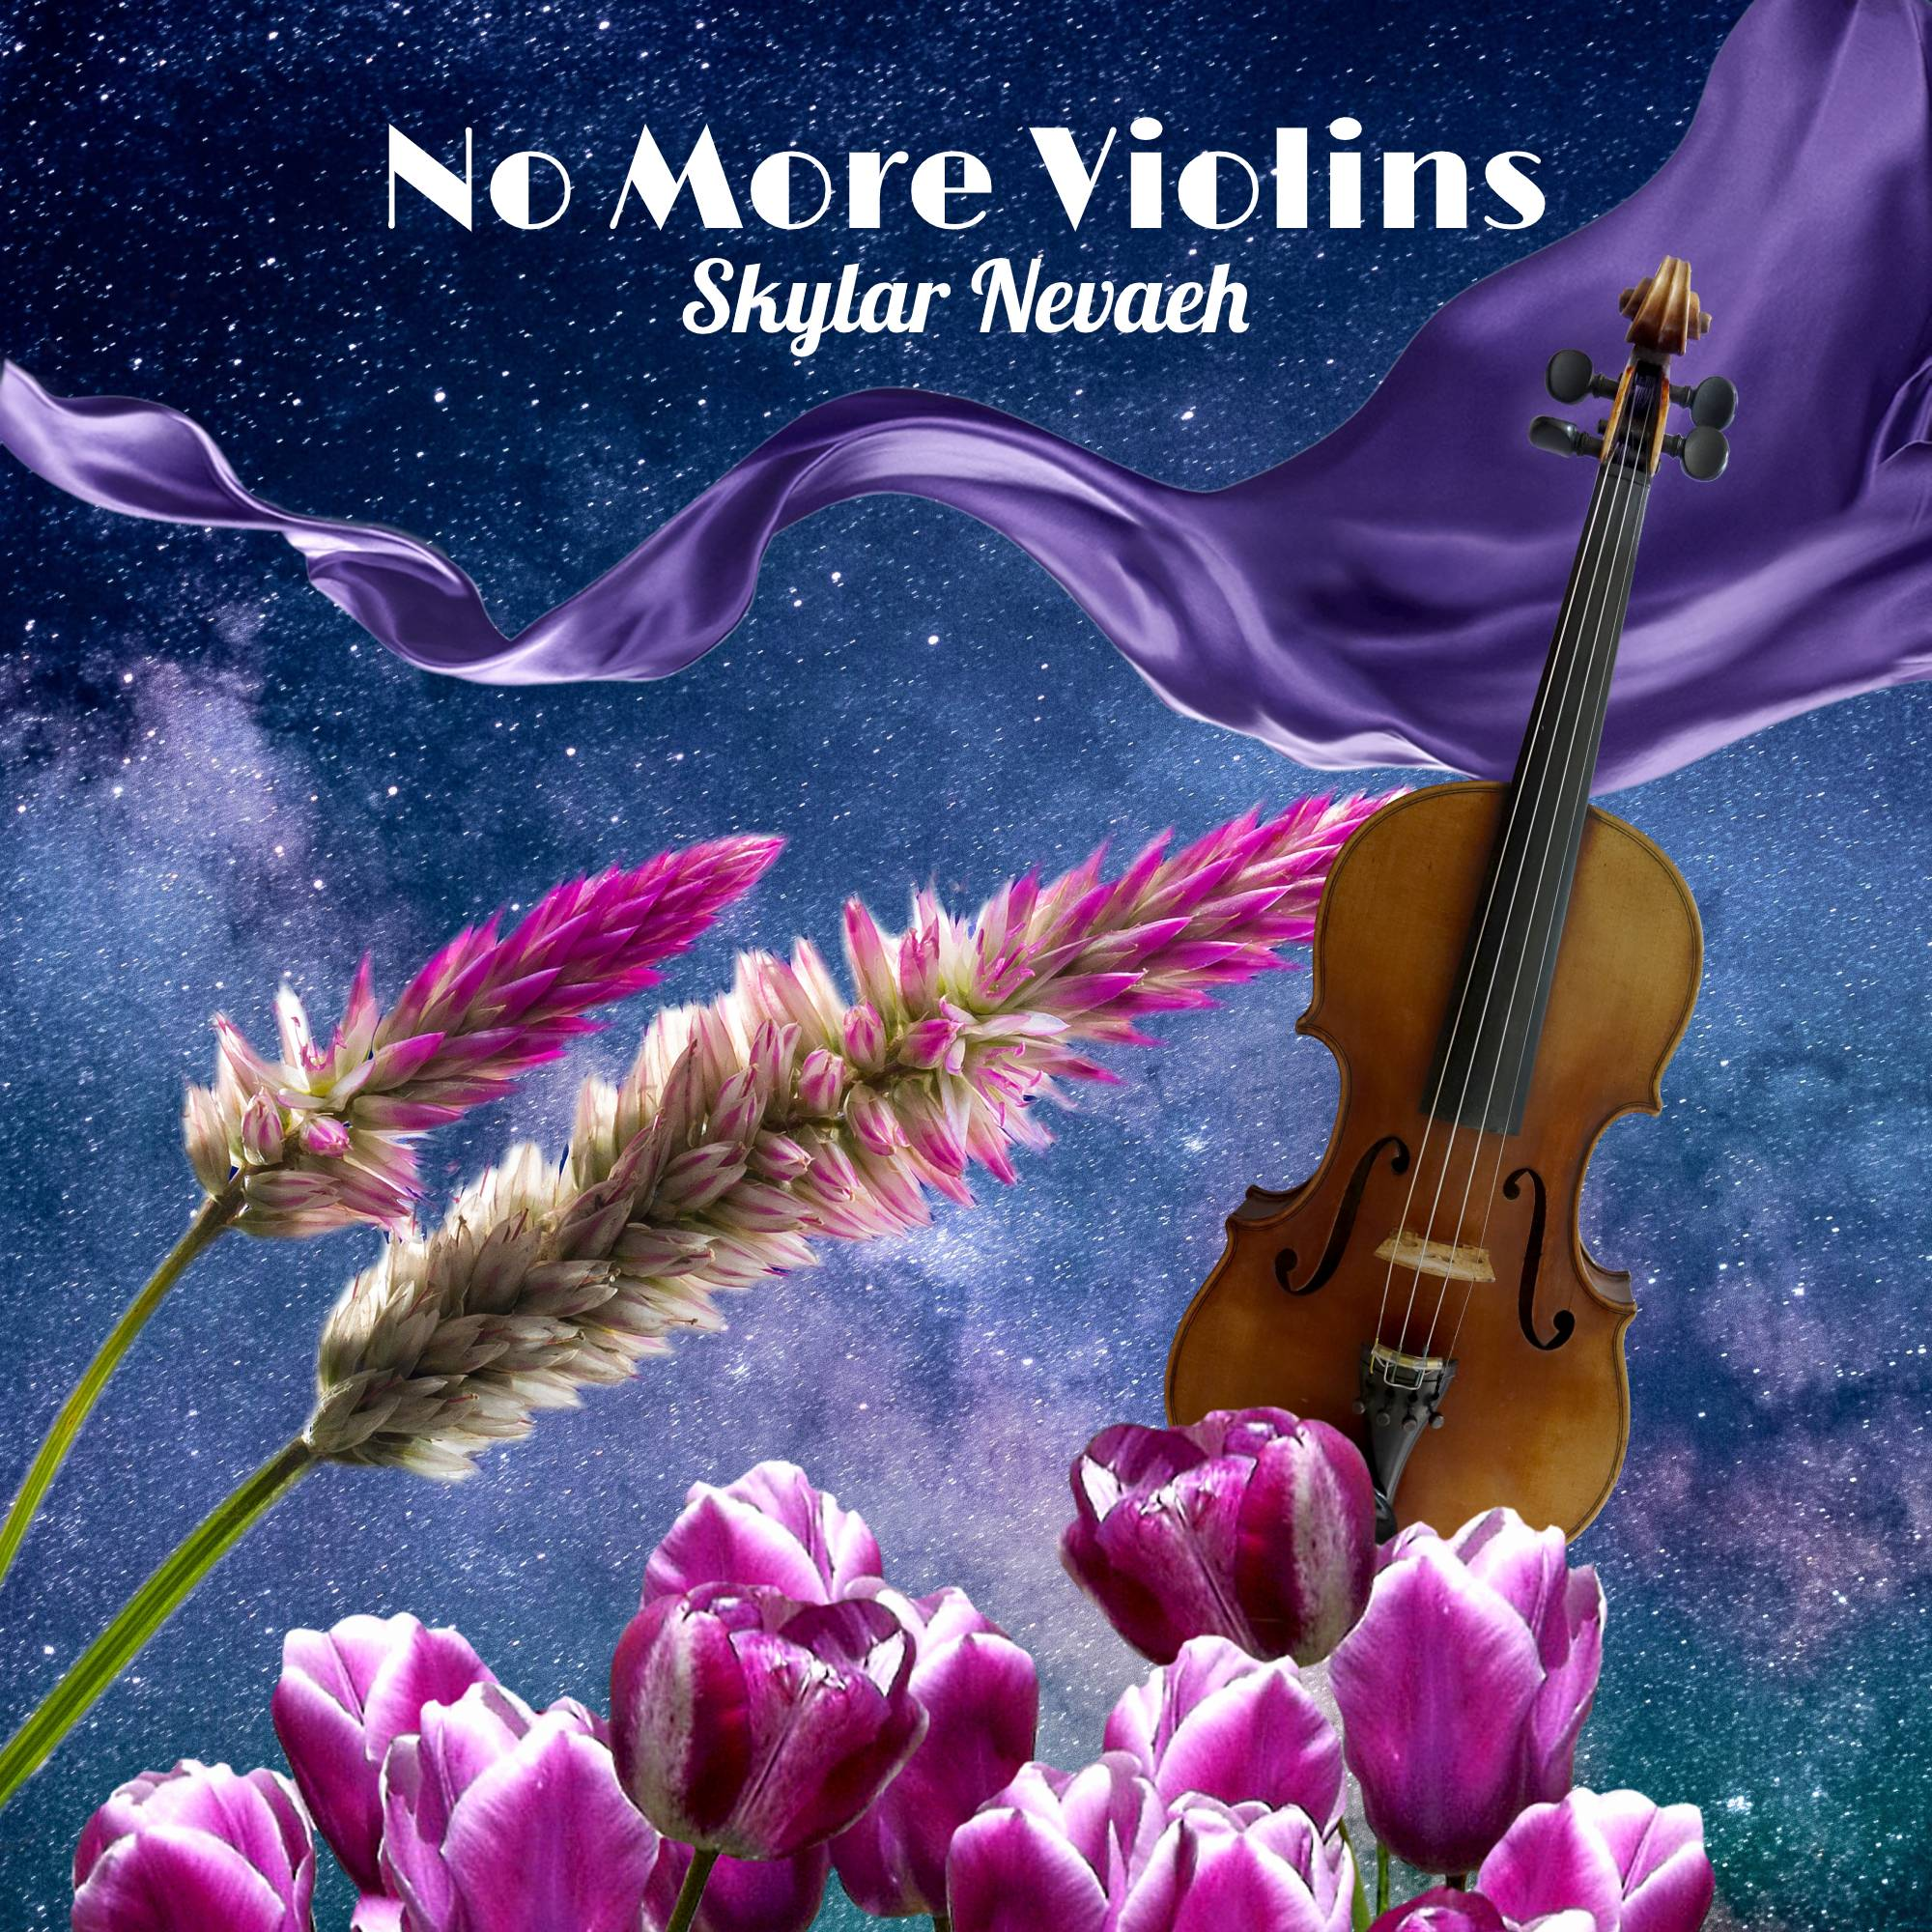 No More Violins Album Cover